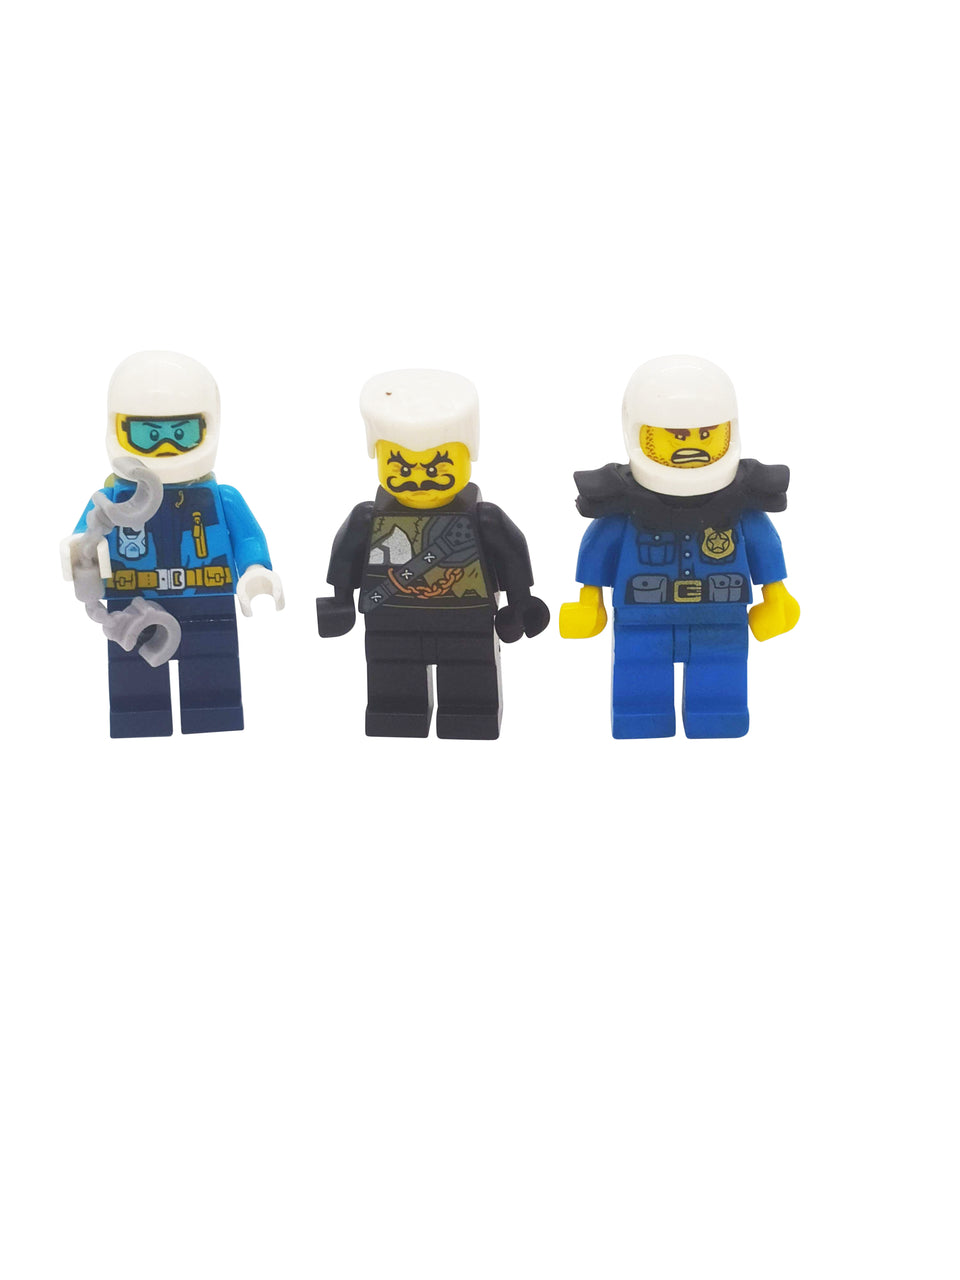 special Trio of minifigure lego #17